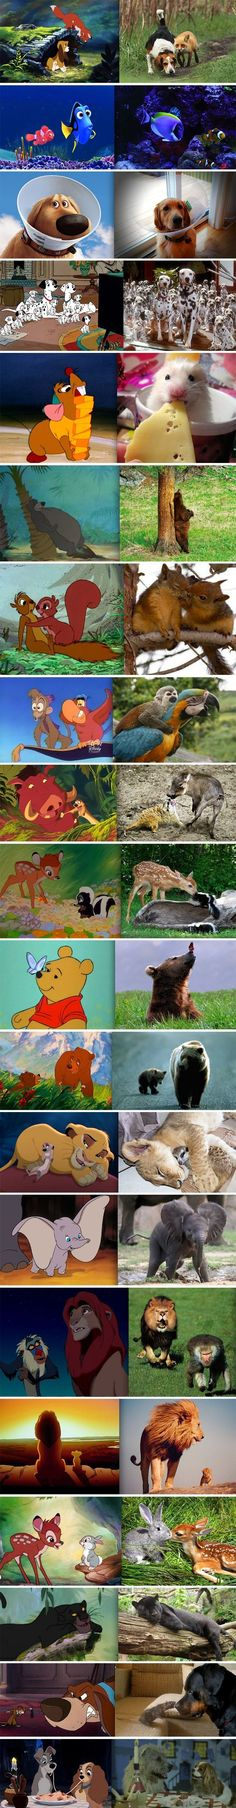 I love Disney no one I mean no one could  grow too old for Disney. But Disney, try to put more llamas.